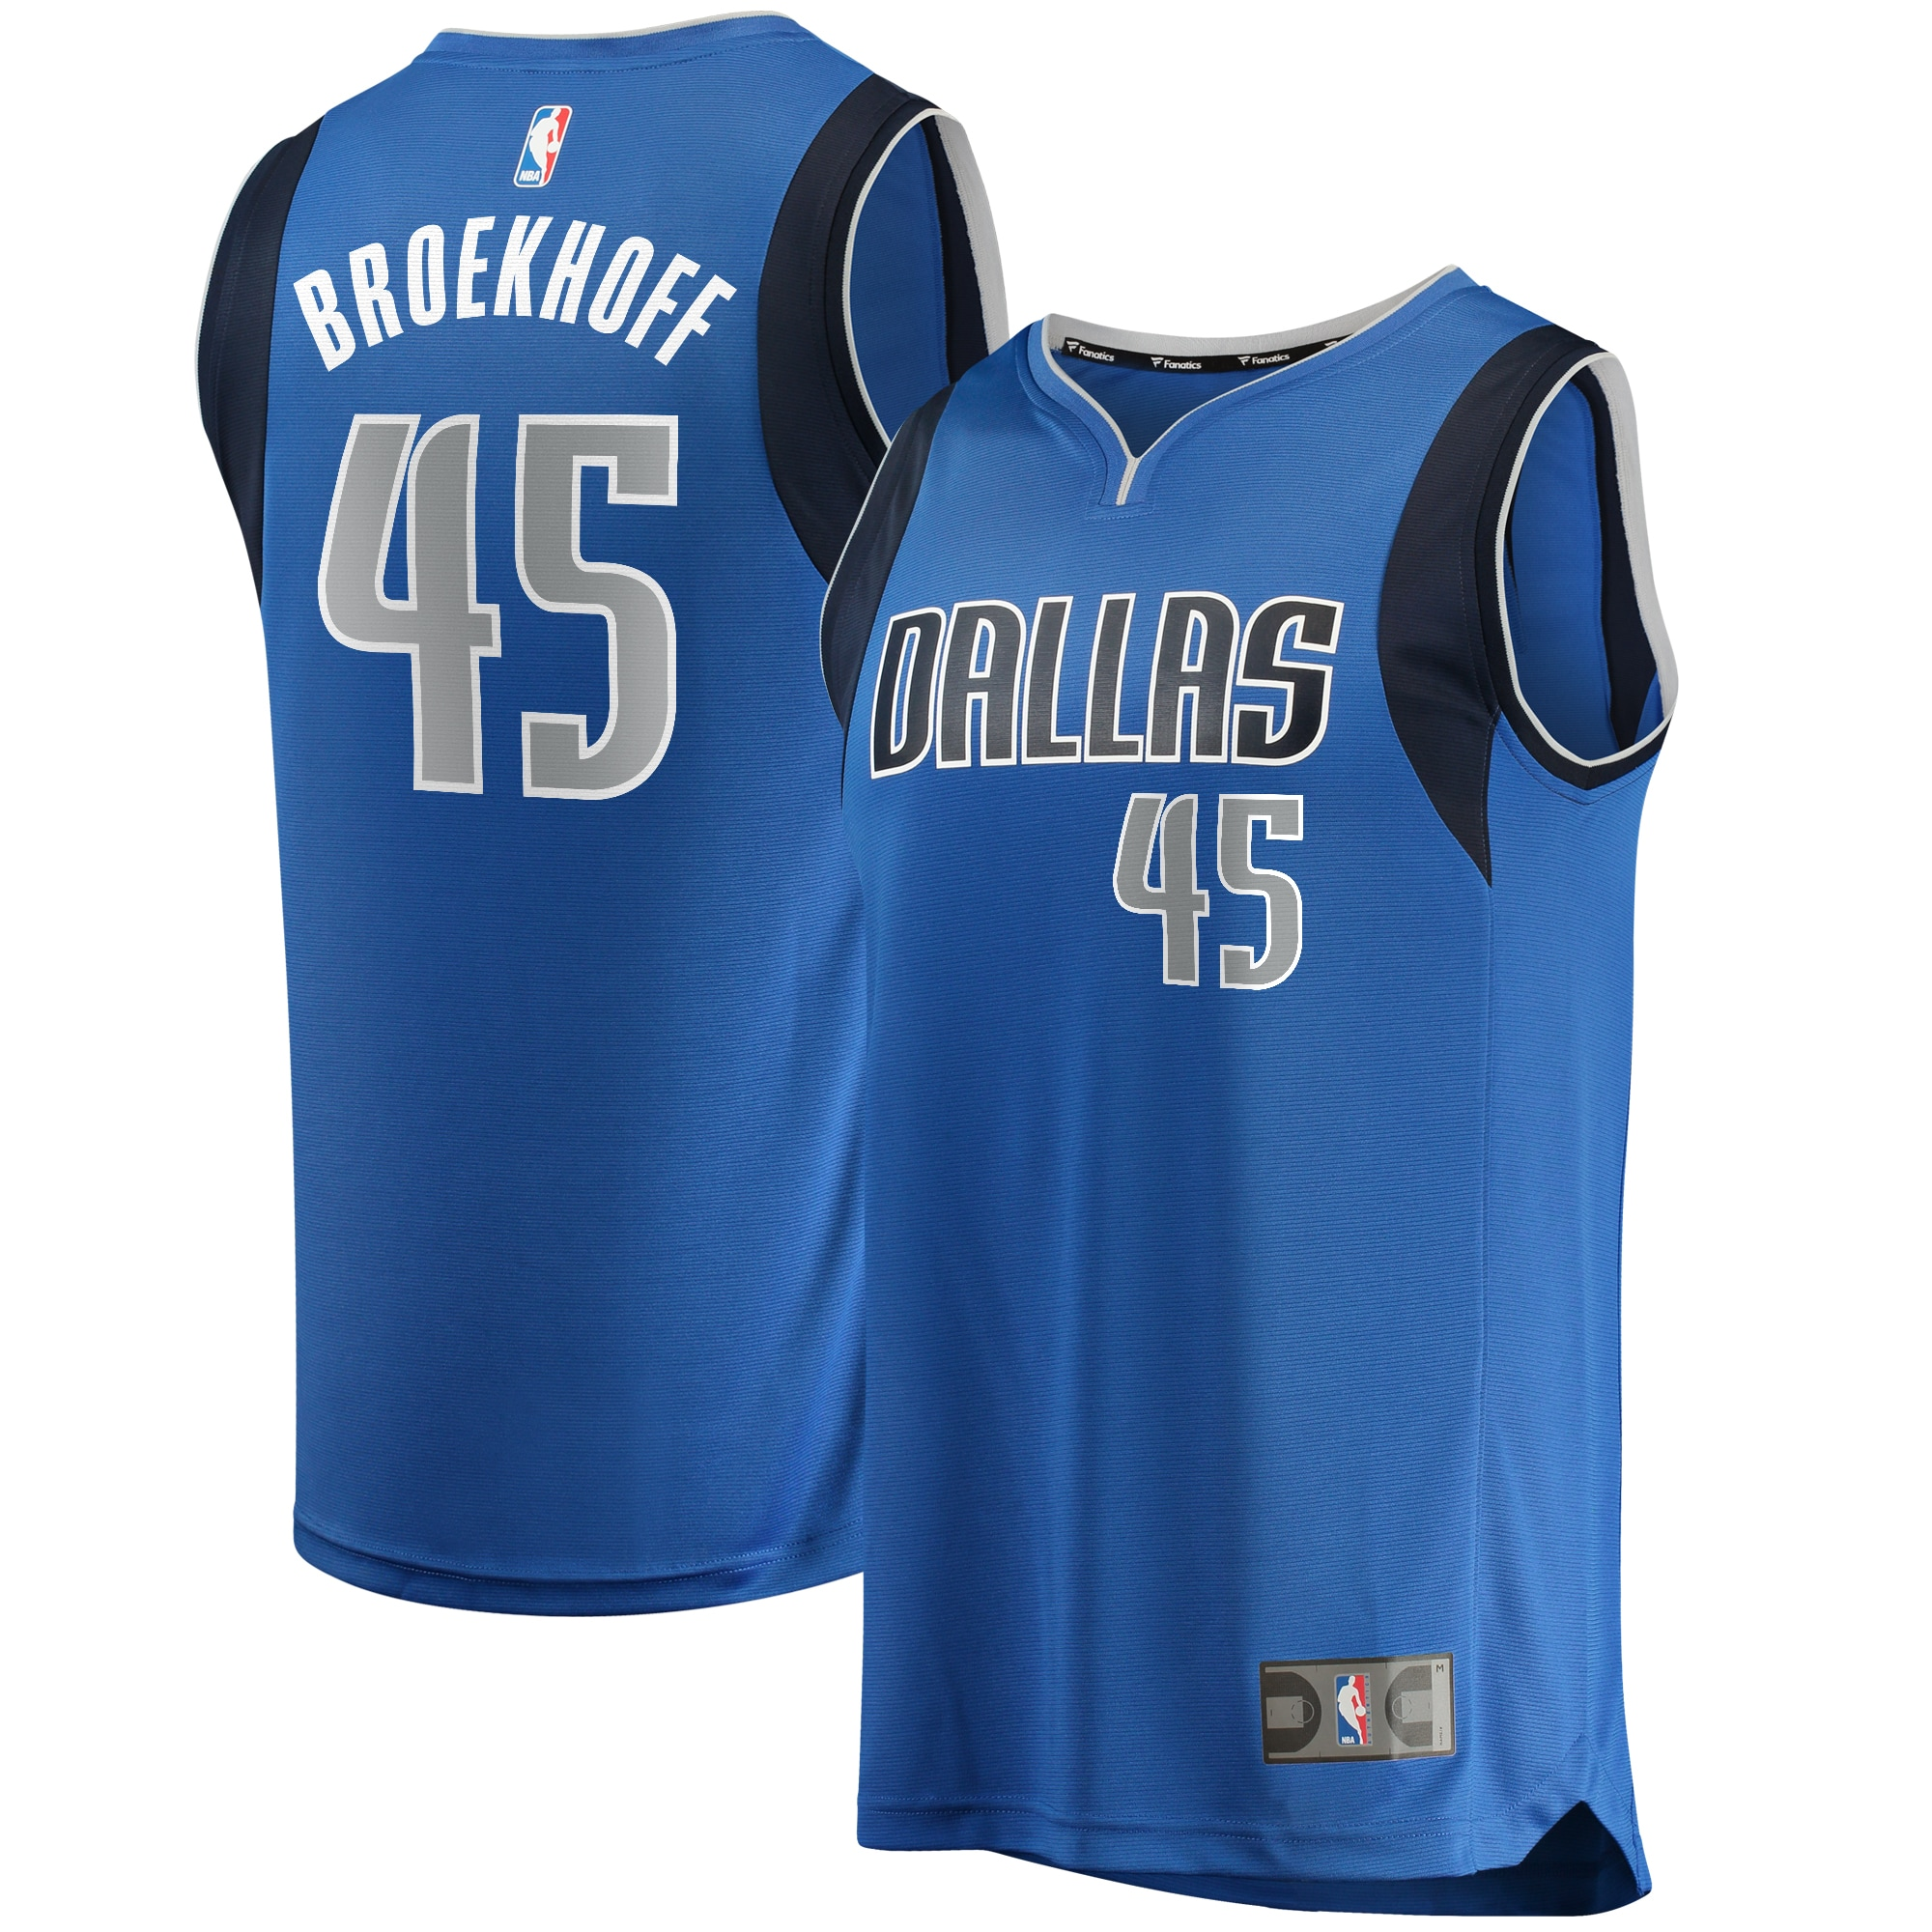 Ryan Broekhoff Dallas Mavericks Fanatics Branded Fast Break Player Replica Jersey - Icon Edition - Blue